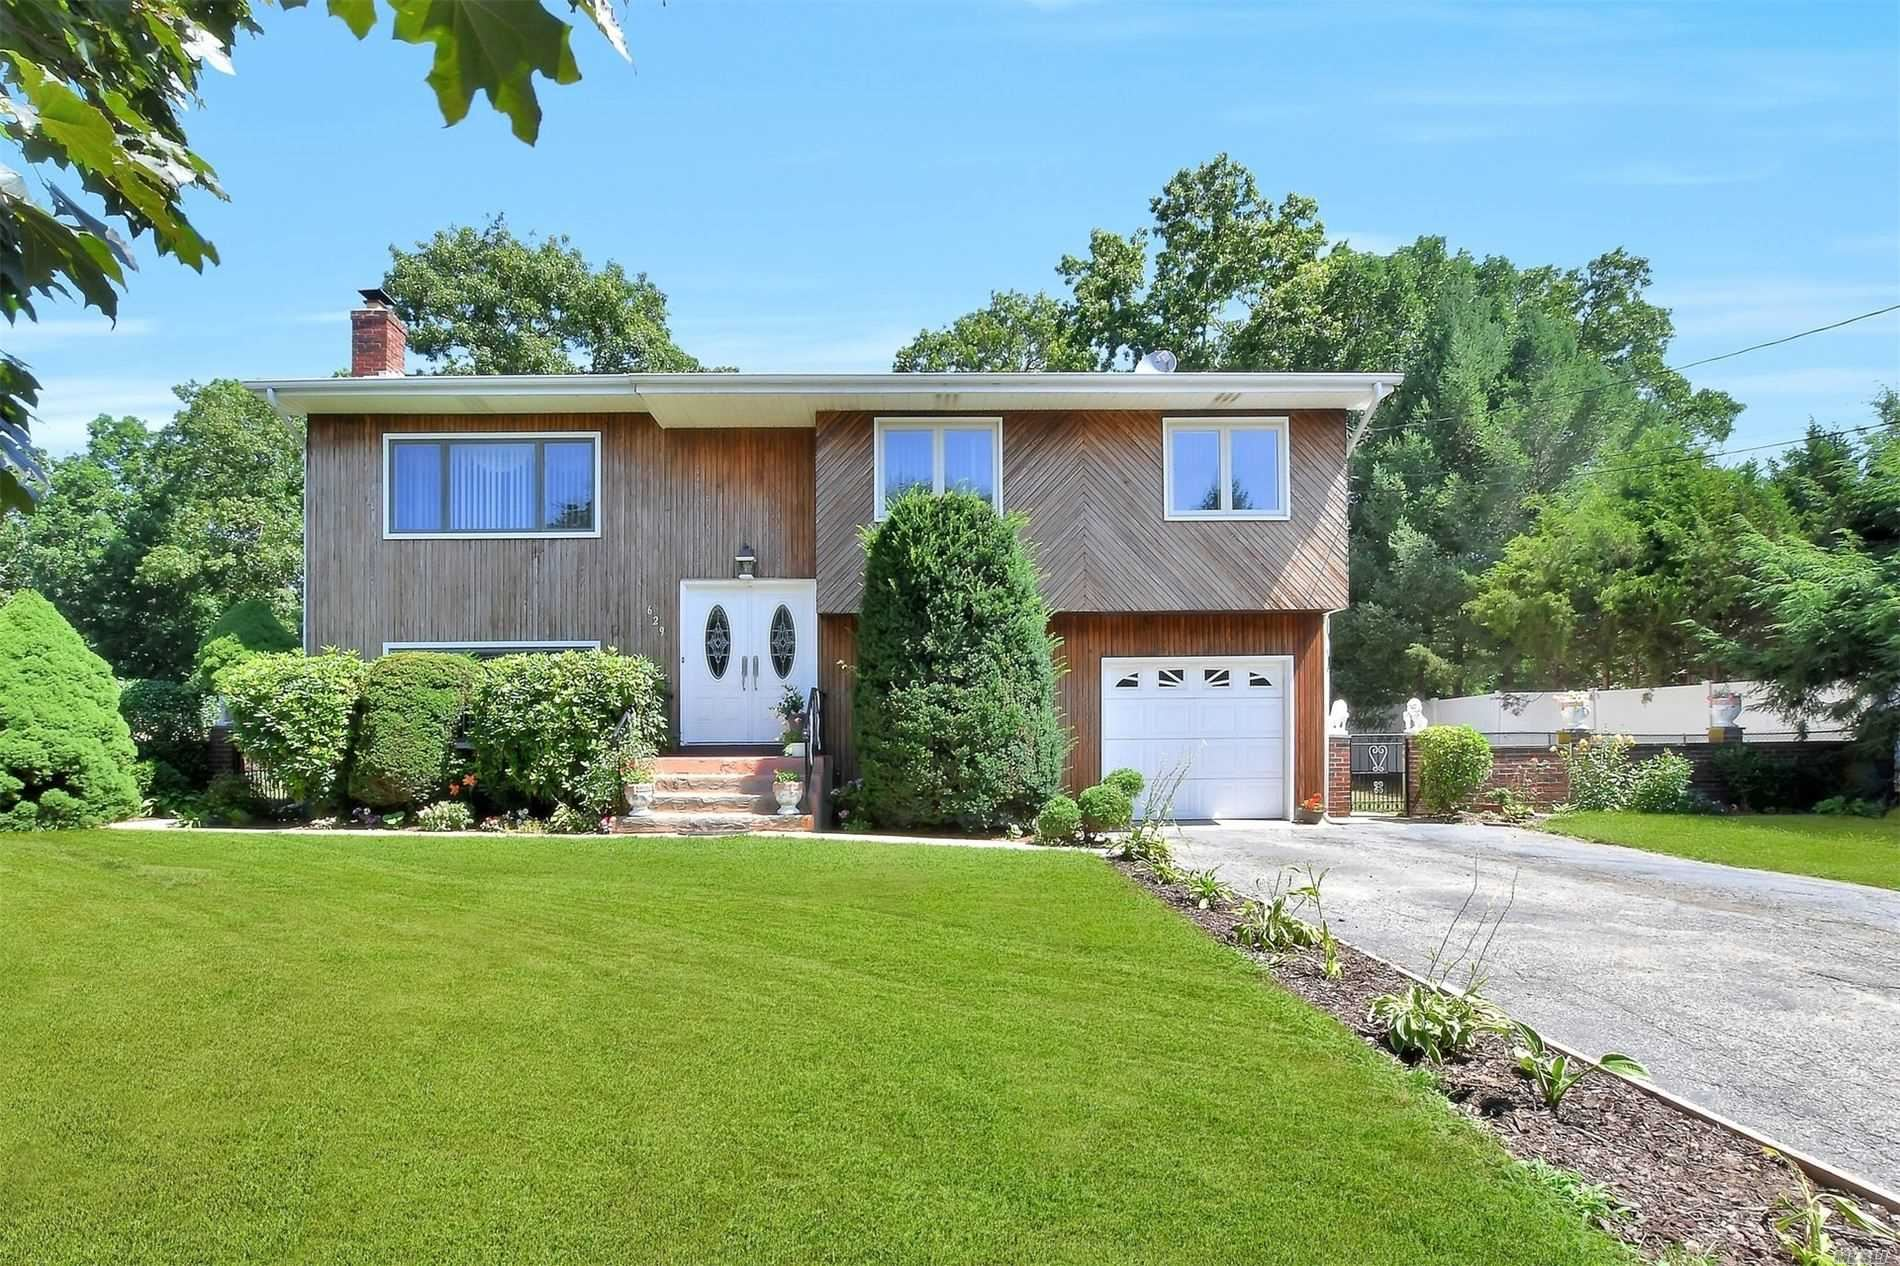 629 Old Town Road Rd, Port Jefferson Station, NY 11776 - MLS#: 3239628